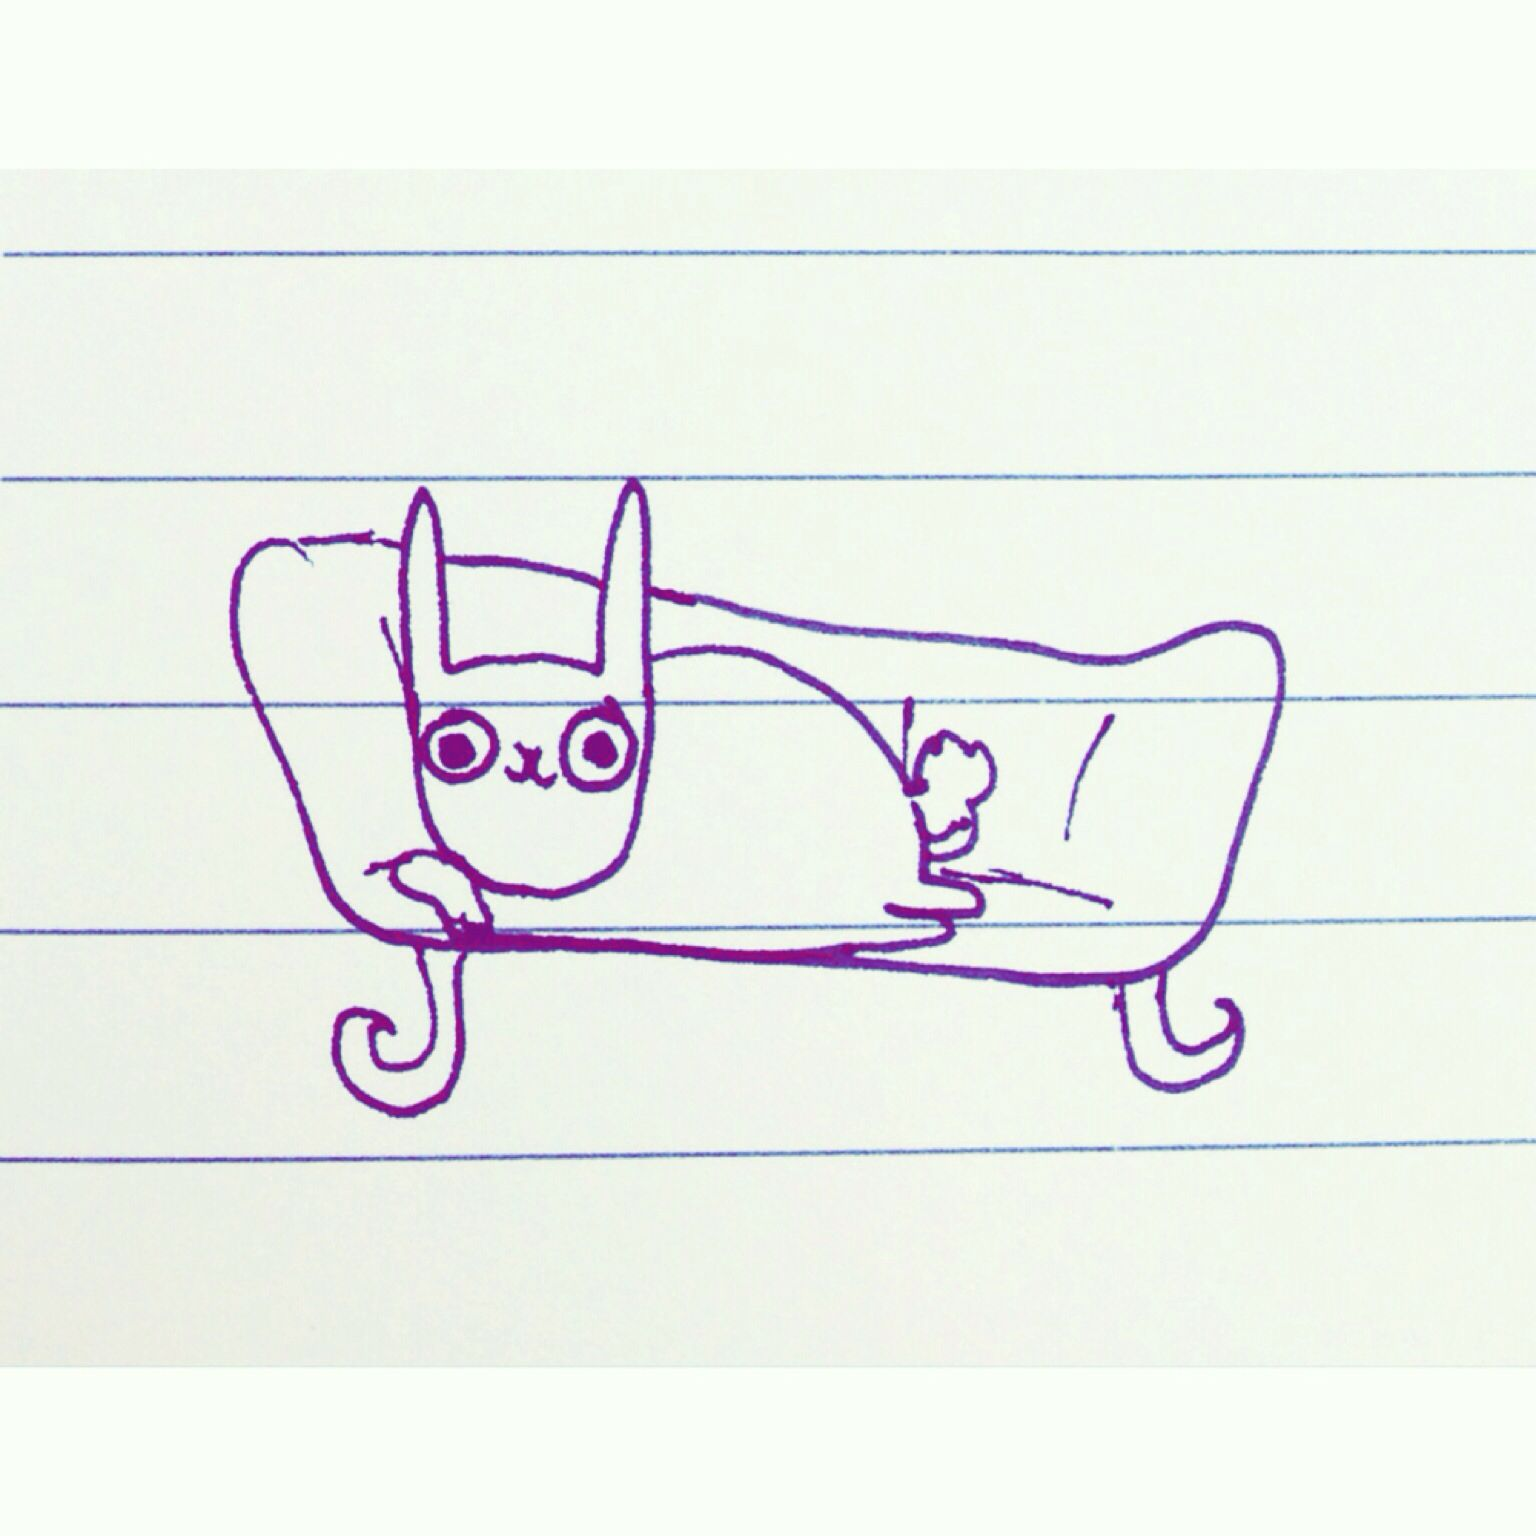 Bunny on a chaise Longue by Rosie Chomet